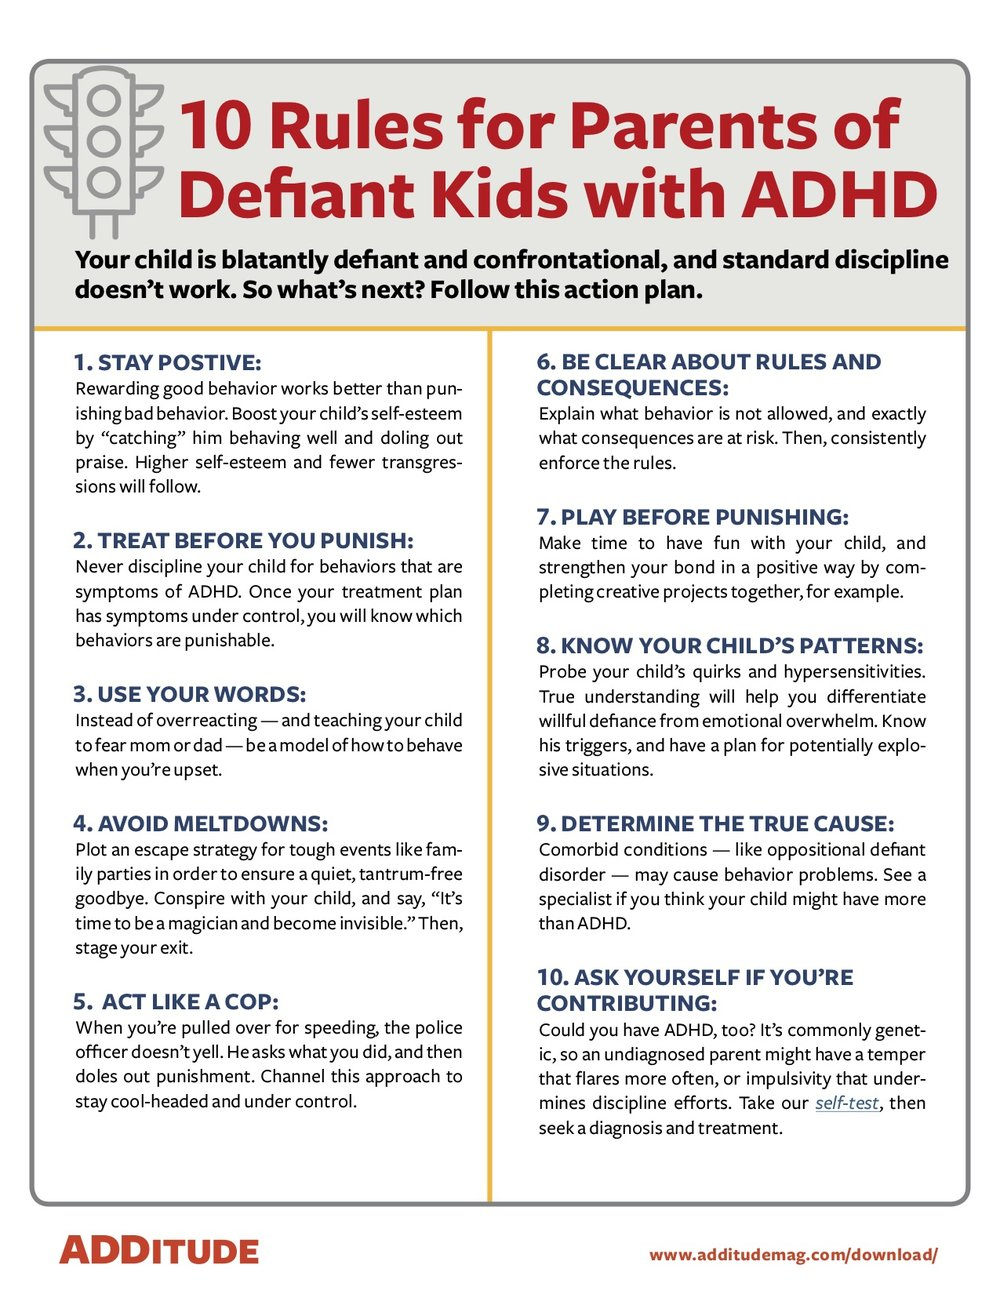 10-rules-for-parents-of-defiant-kids-with-adhd-secured.jpg